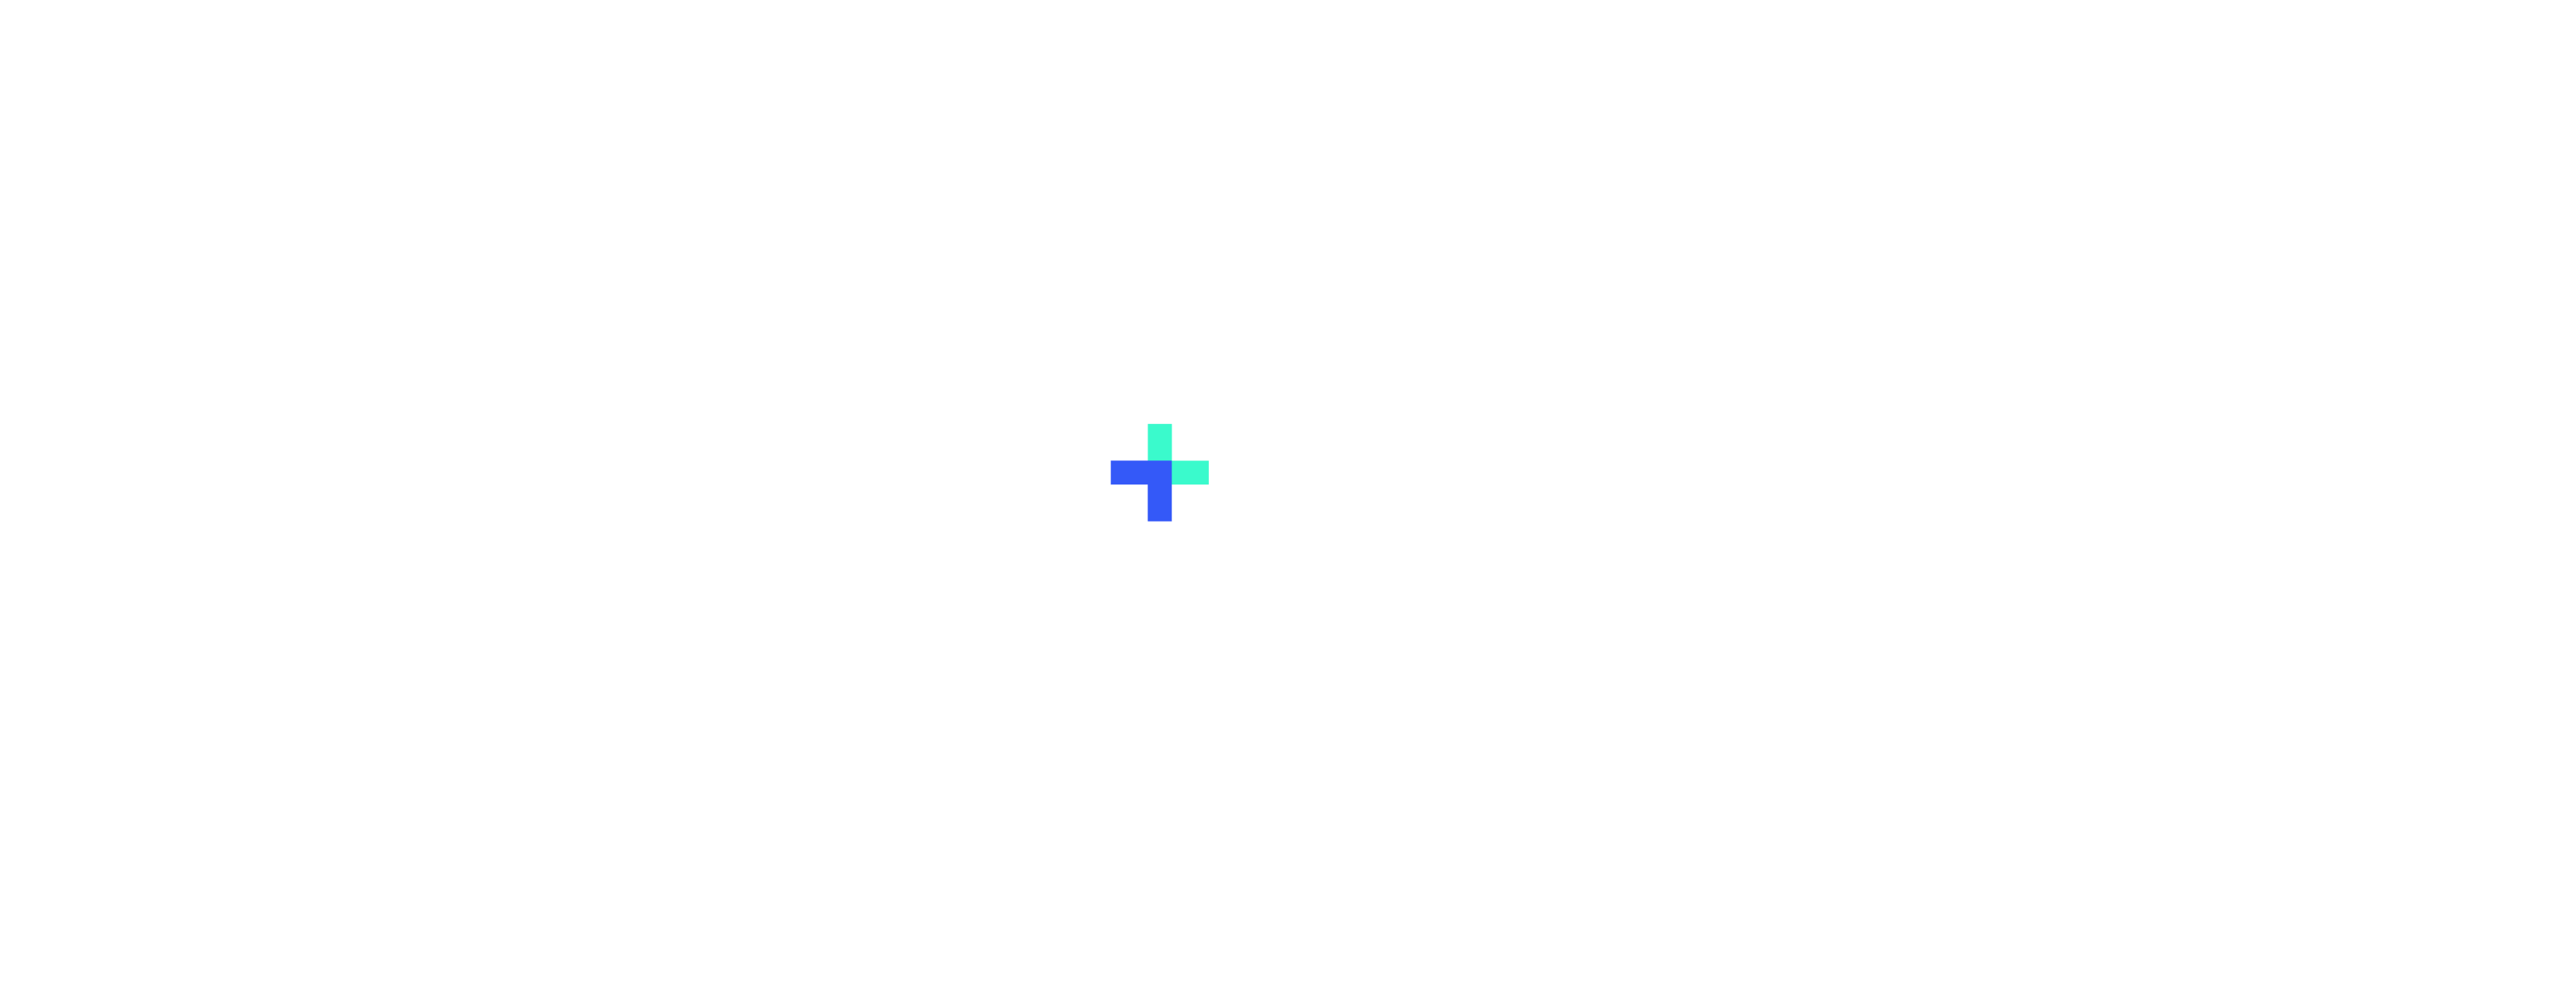 The Top 5 Takeaways from Audit & Beyond 2020